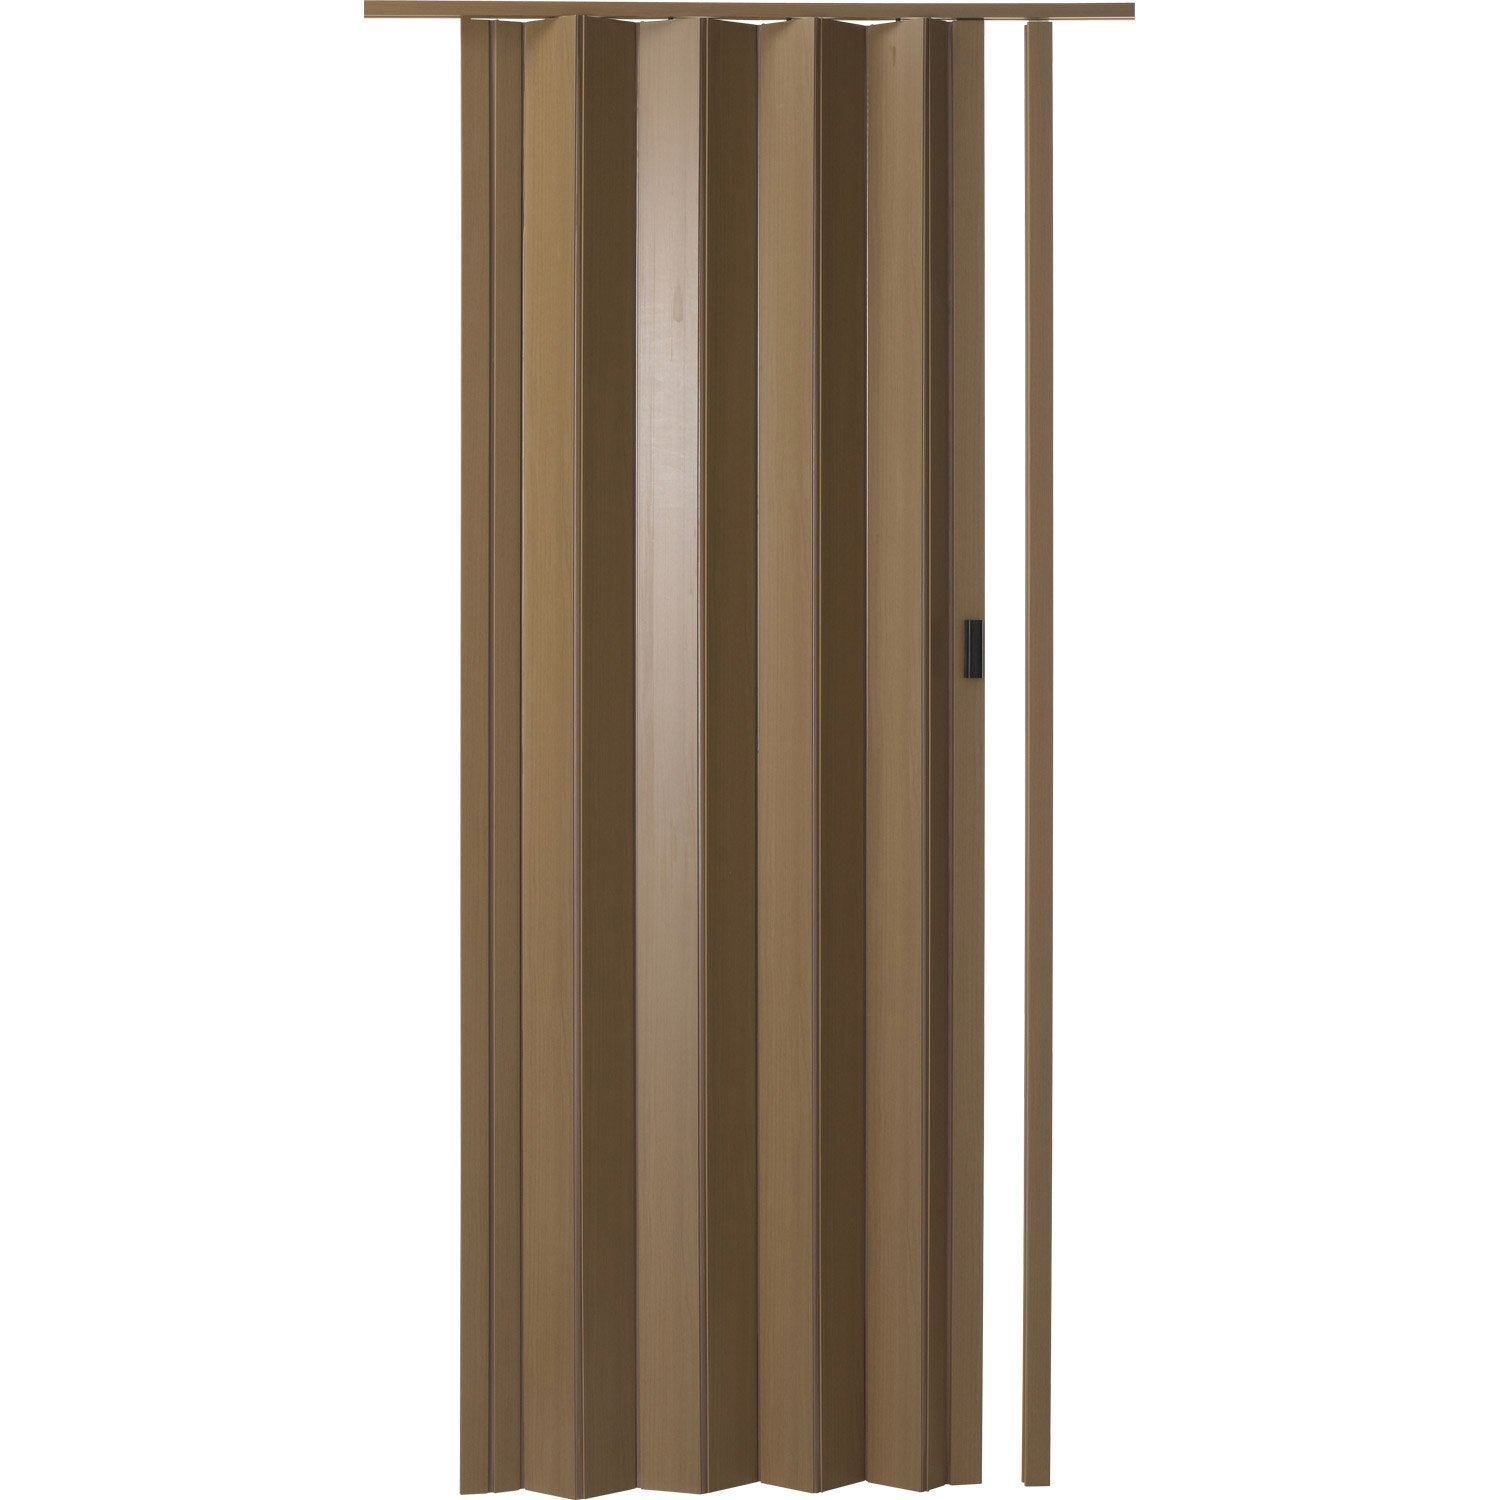 Porte extensible rio noyer 205 x 85 cm pais d 39 une lame 6 mm leroy - Portes accordeons leroy merlin ...